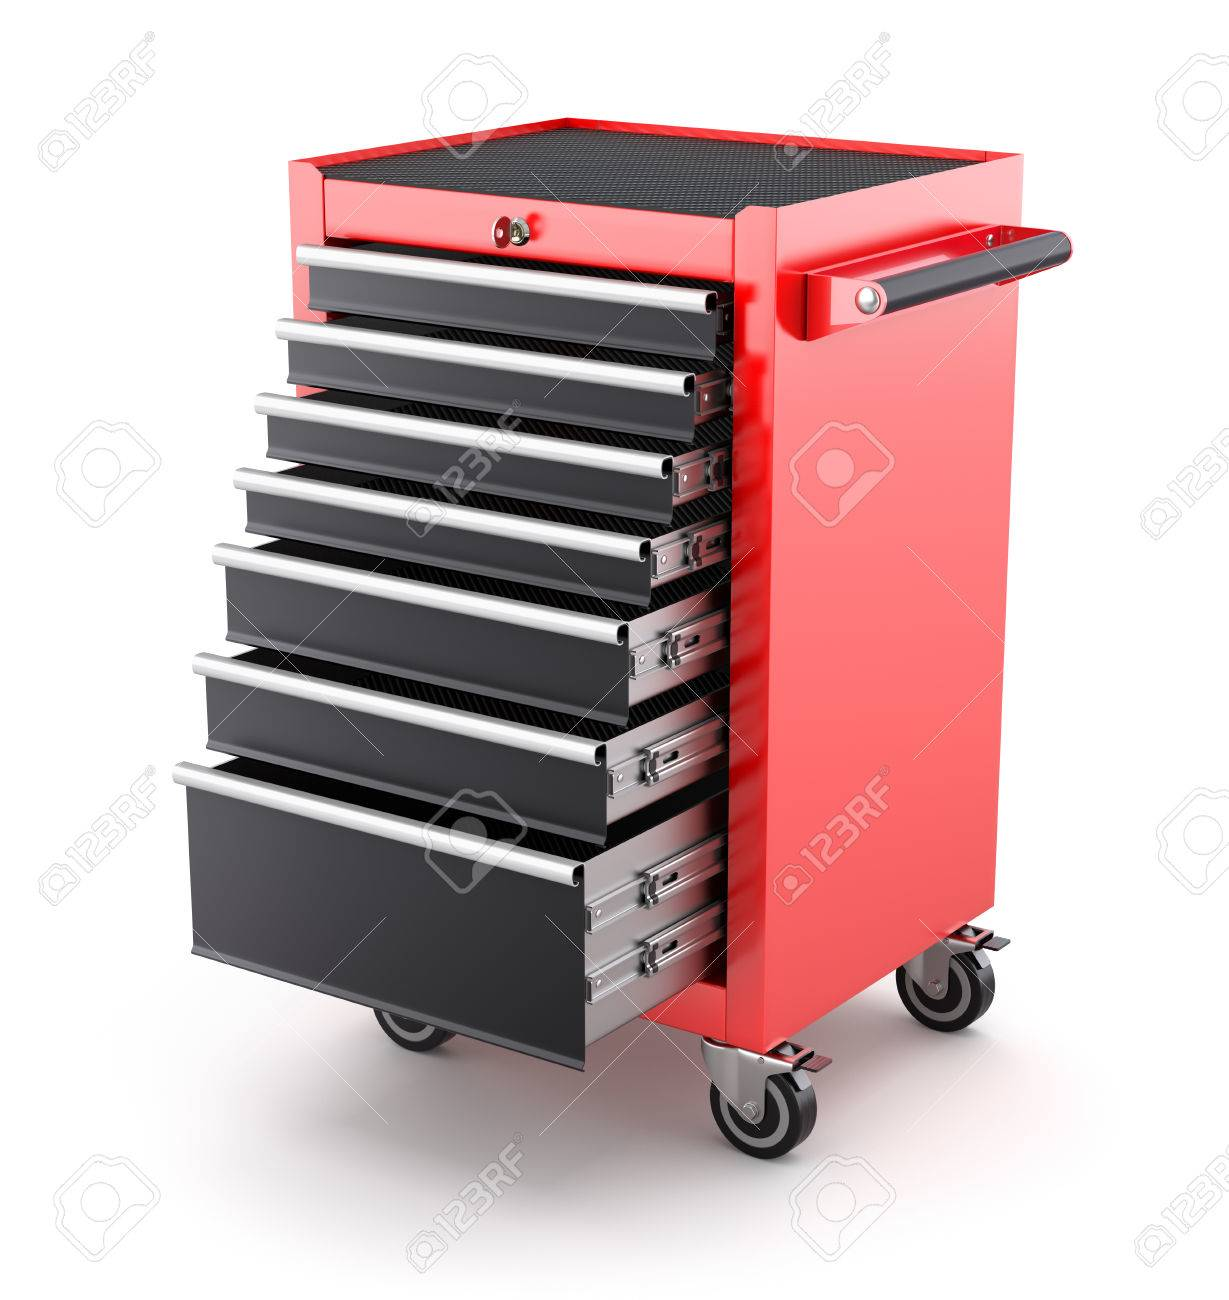 Tool Cabinets on white background - 3D illustration - 55117607